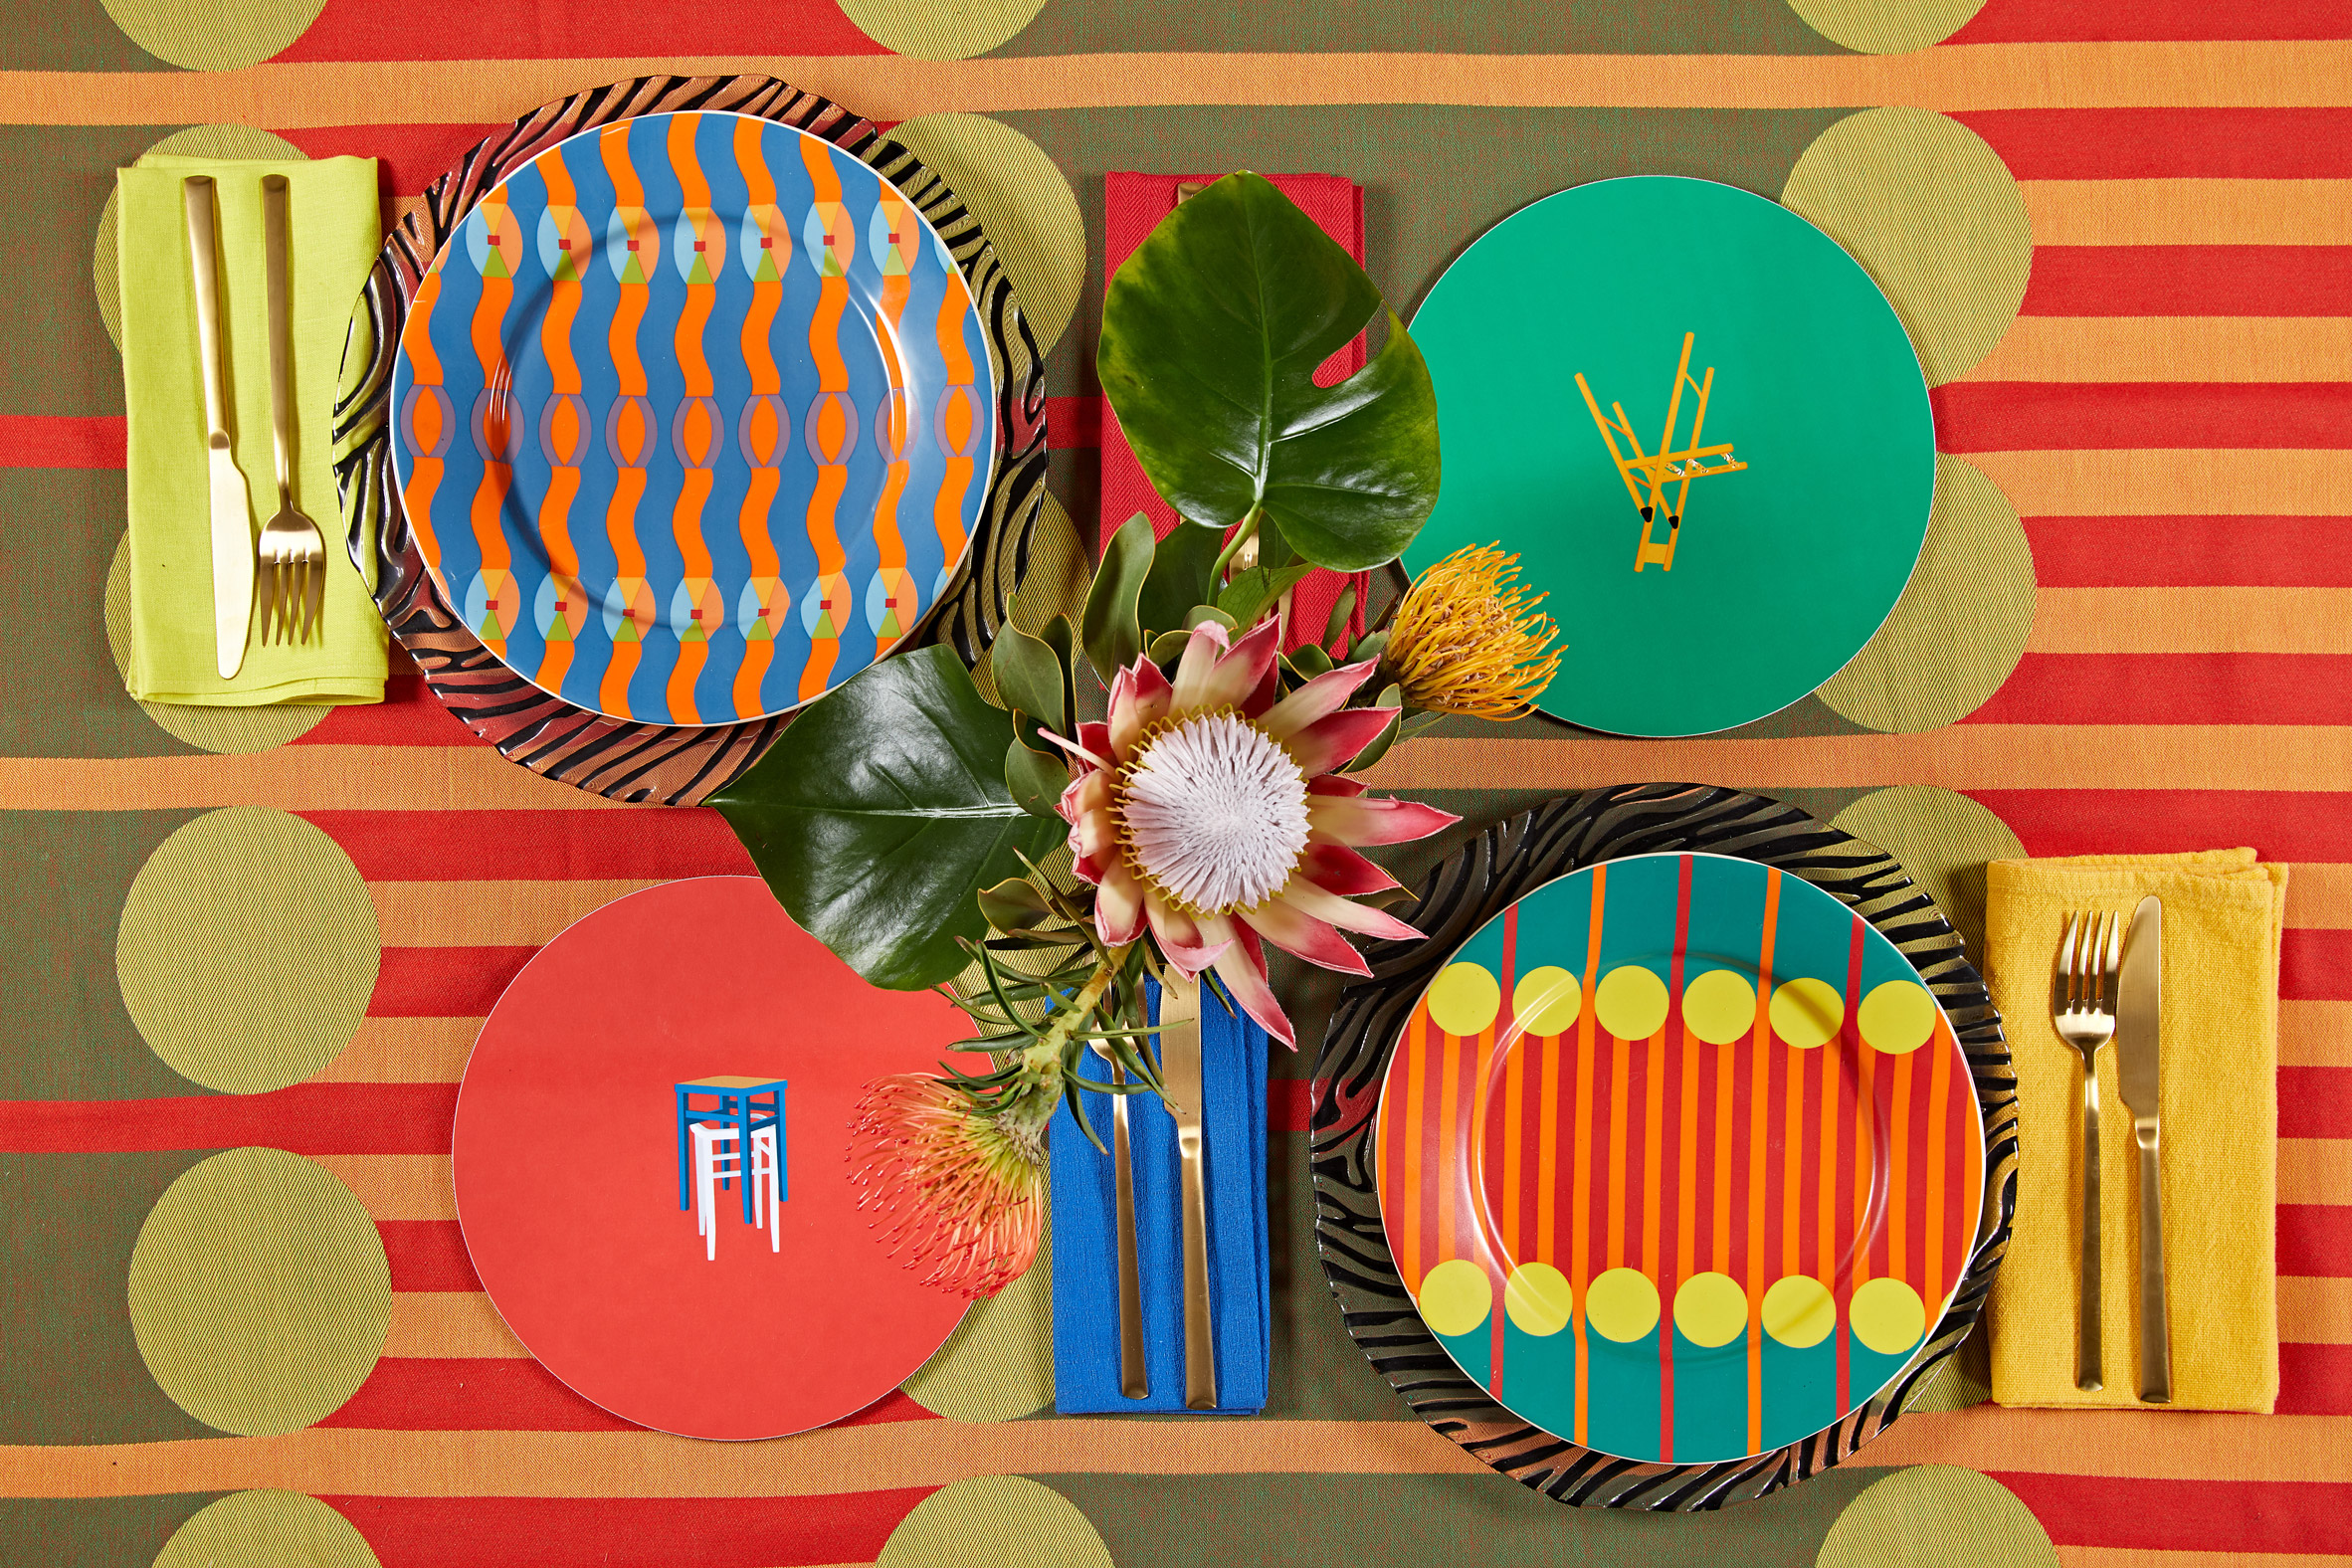 Omi plate, Parable placemats, Aami Aami plate and tablecloth